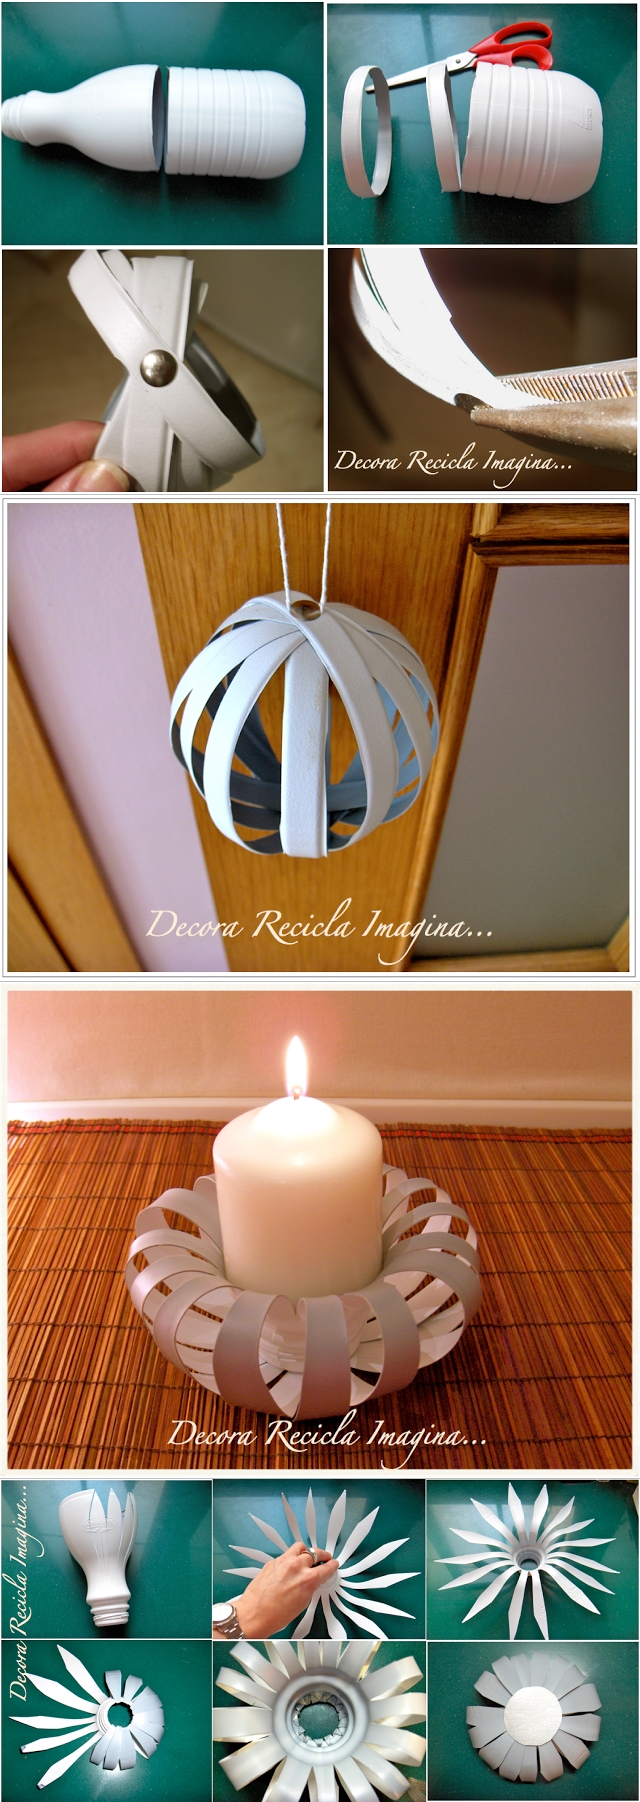 DIY Candle Holder from Plastic Bottle